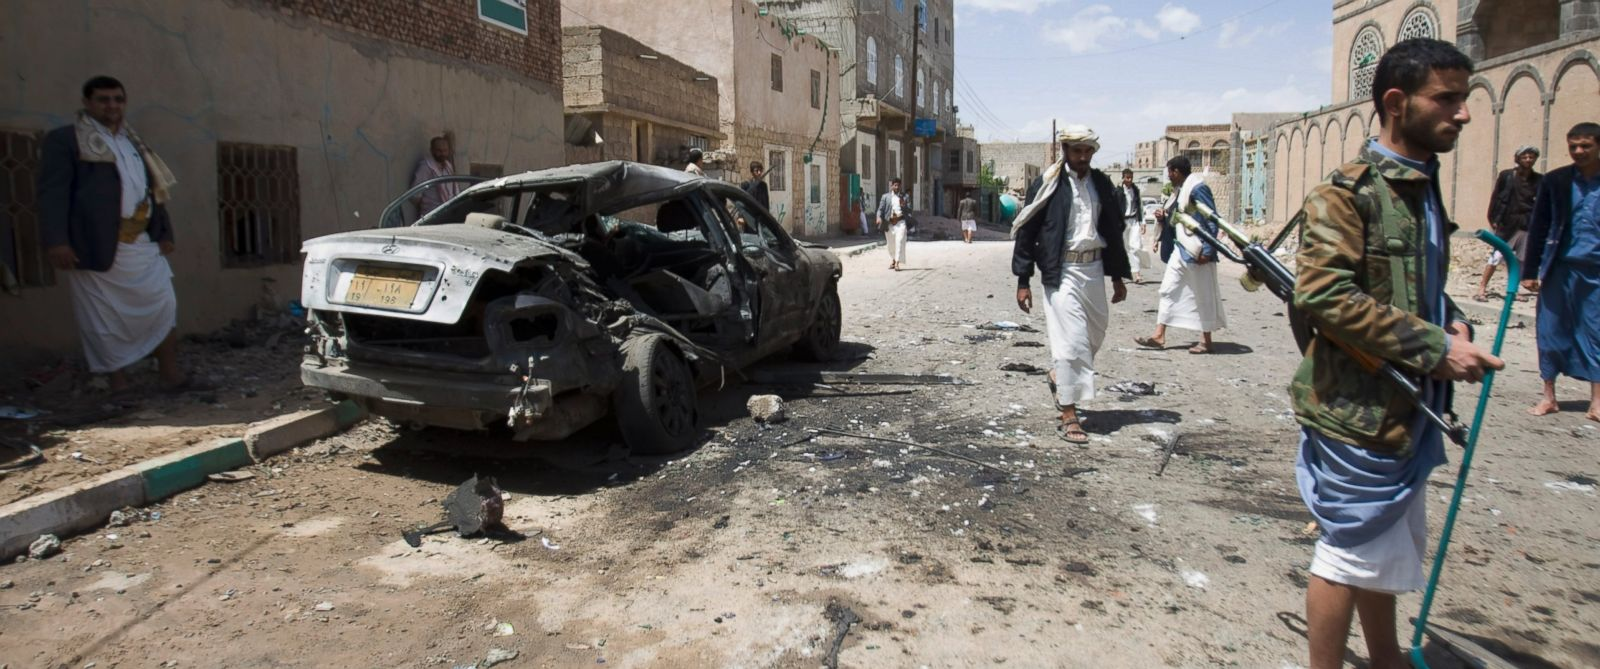 PHOTO: Shiite rebels, known as Houthis, stand near a damaged car after a bomb attack in Sanaa, Yemen, Friday, March 20, 2015.